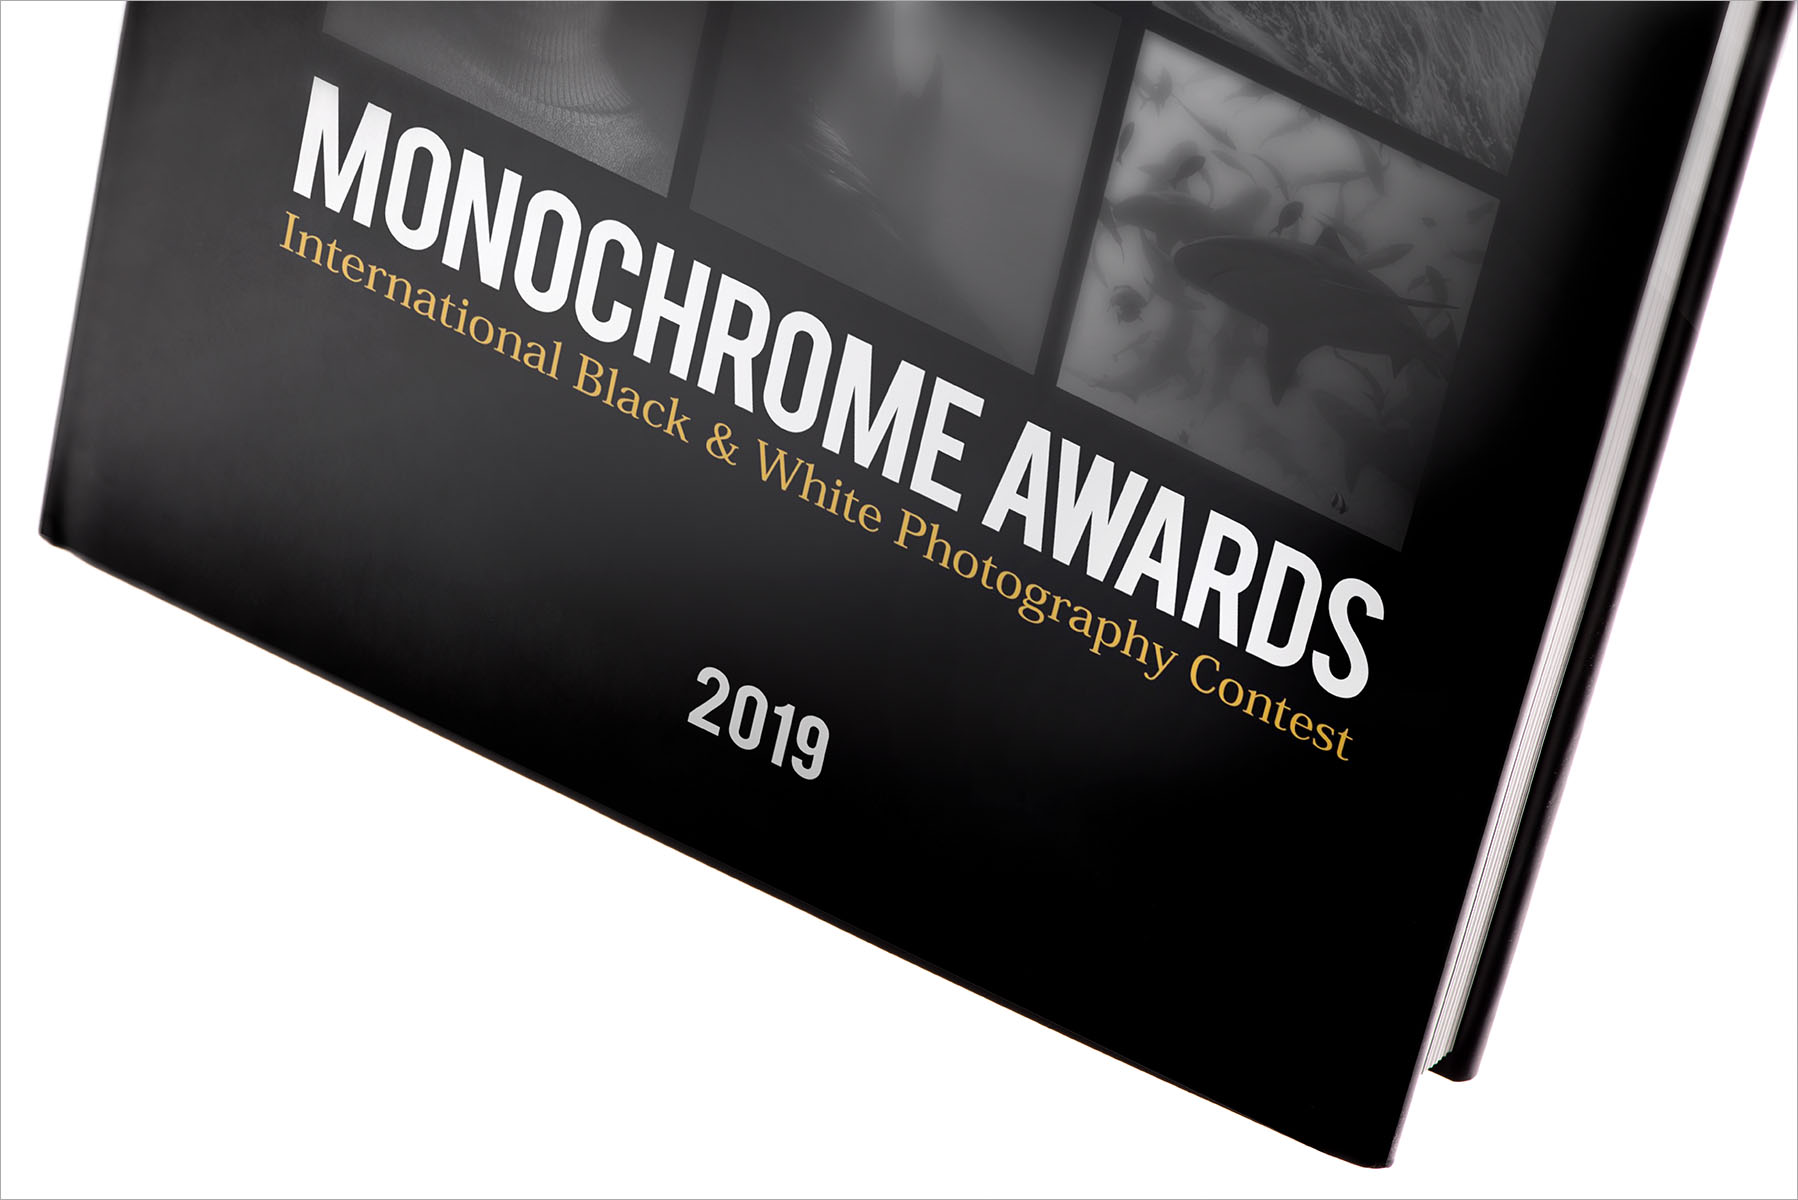 ramon-vaquero_monochrome-book-awards-2